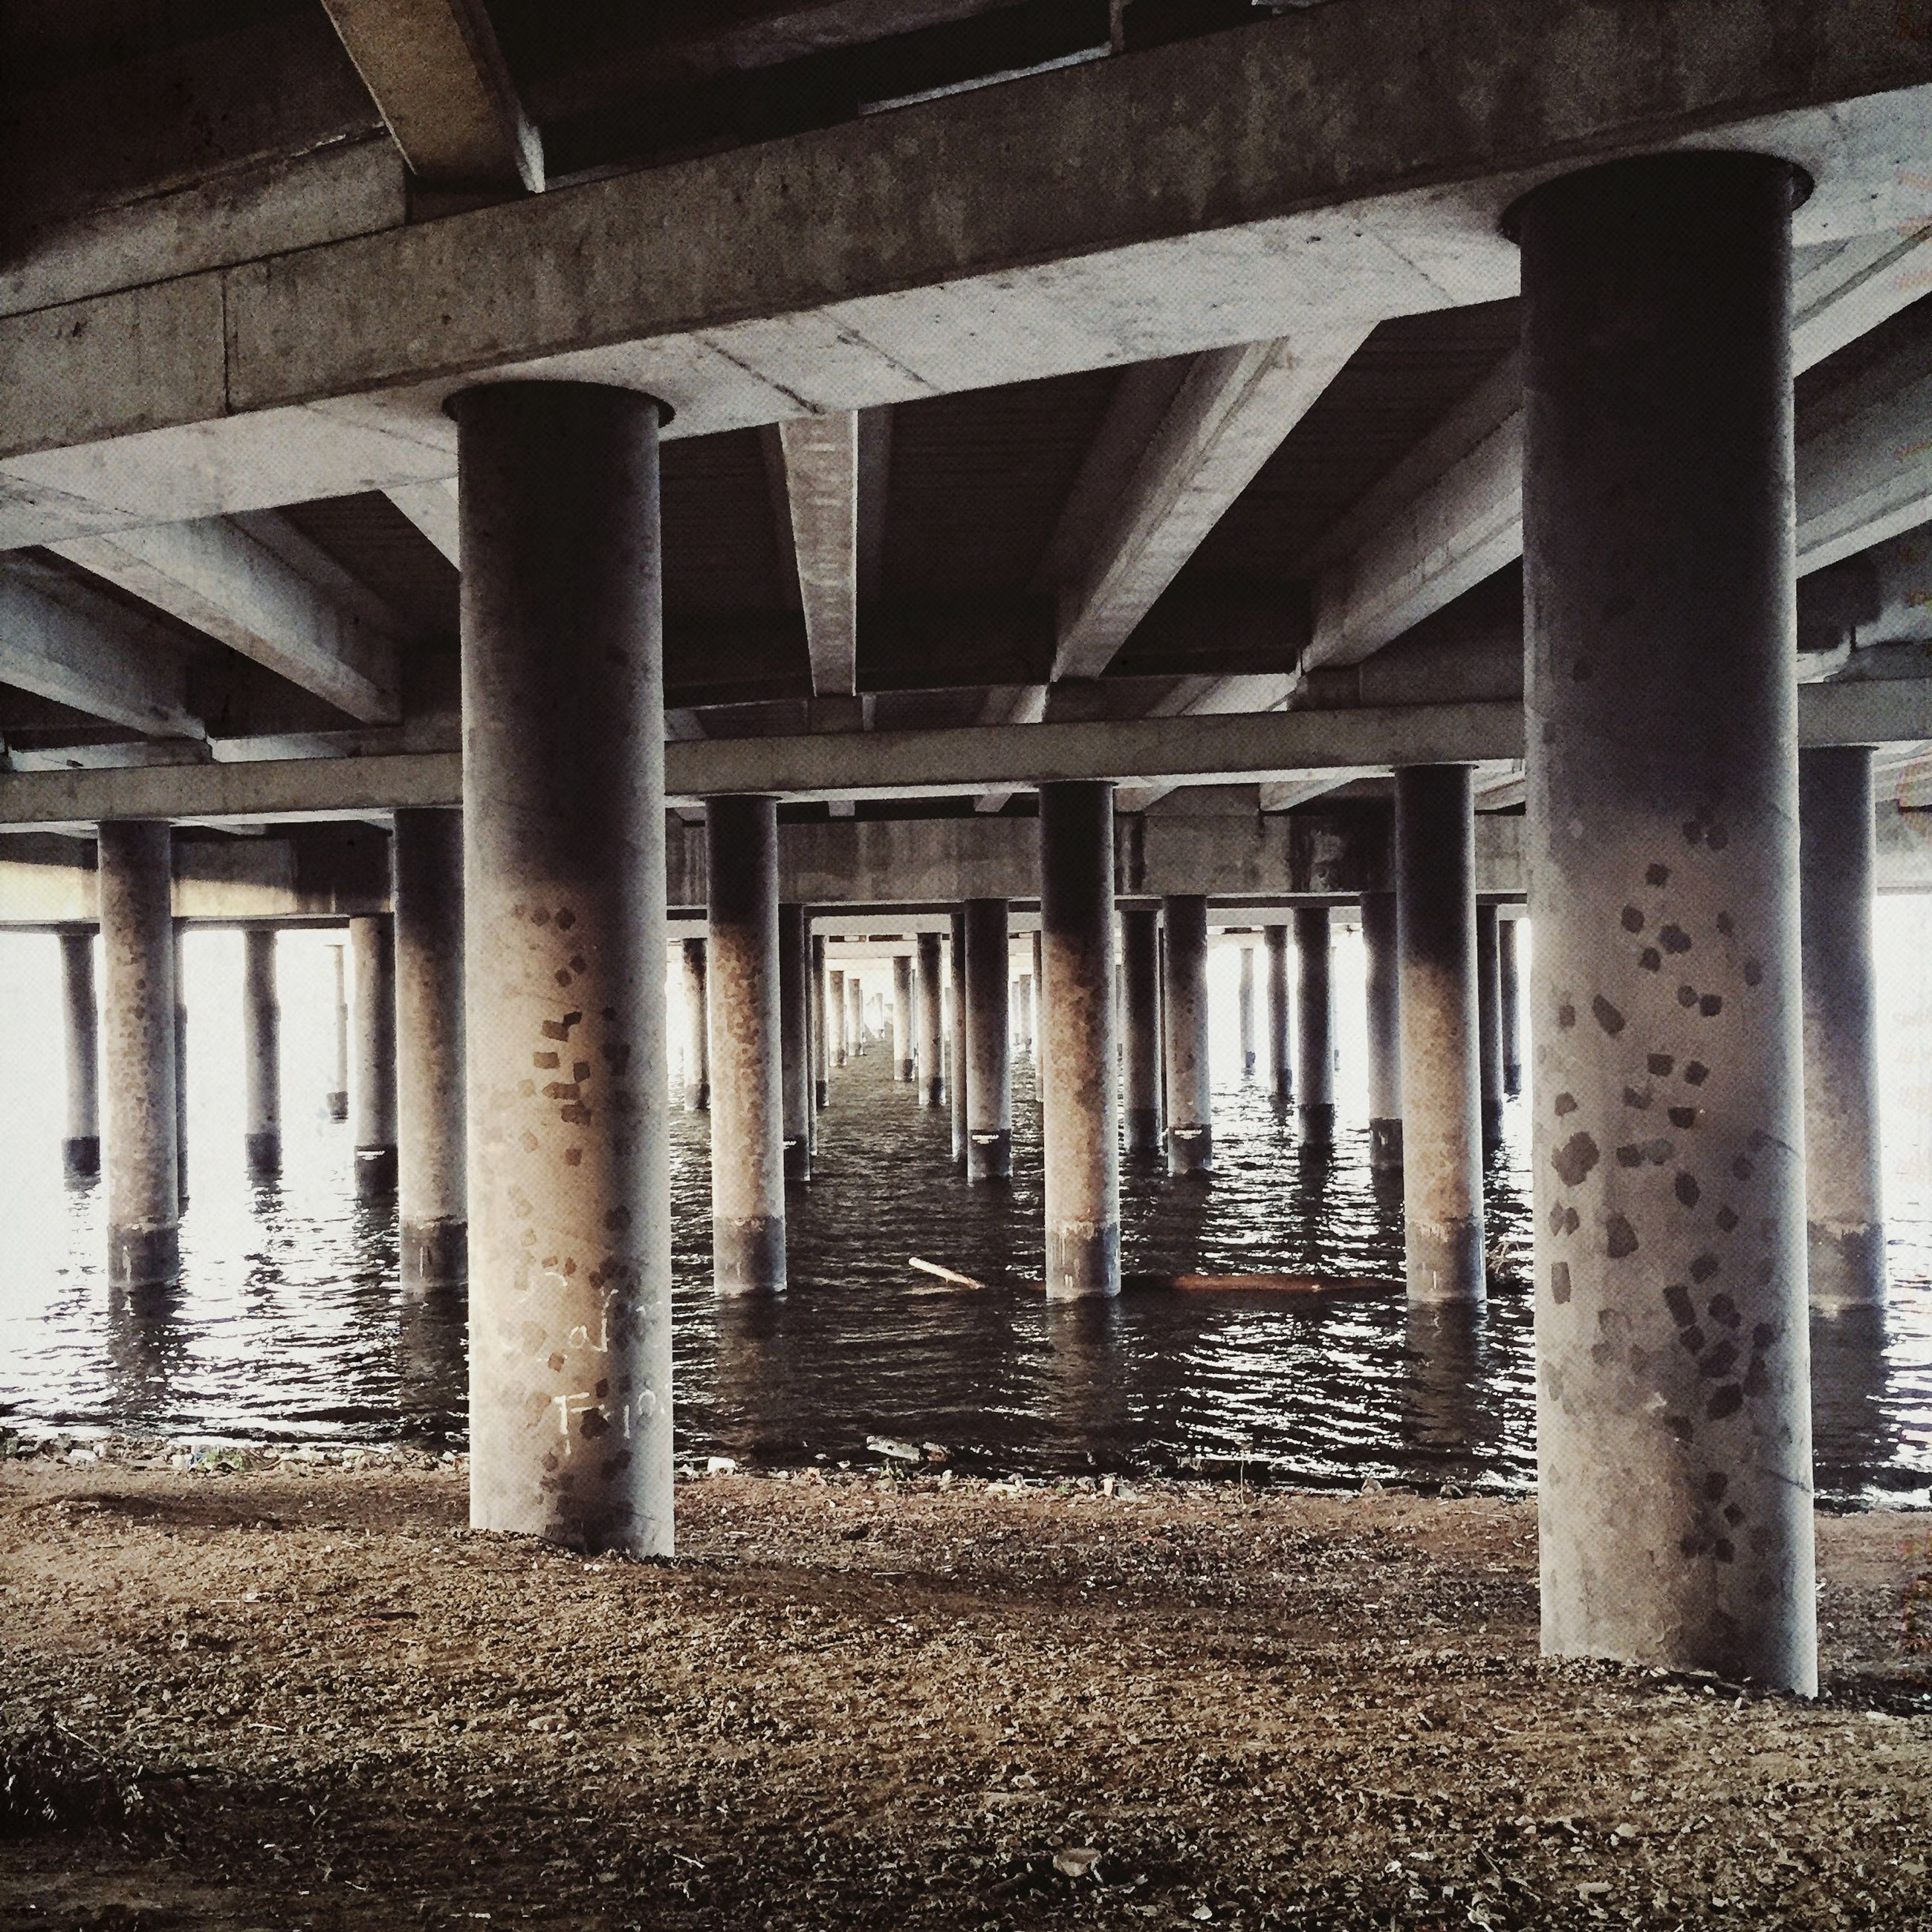 built structure, architectural column, architecture, column, water, in a row, support, bridge - man made structure, pier, sea, pillar, below, colonnade, connection, sunlight, day, wood - material, beach, bridge, no people